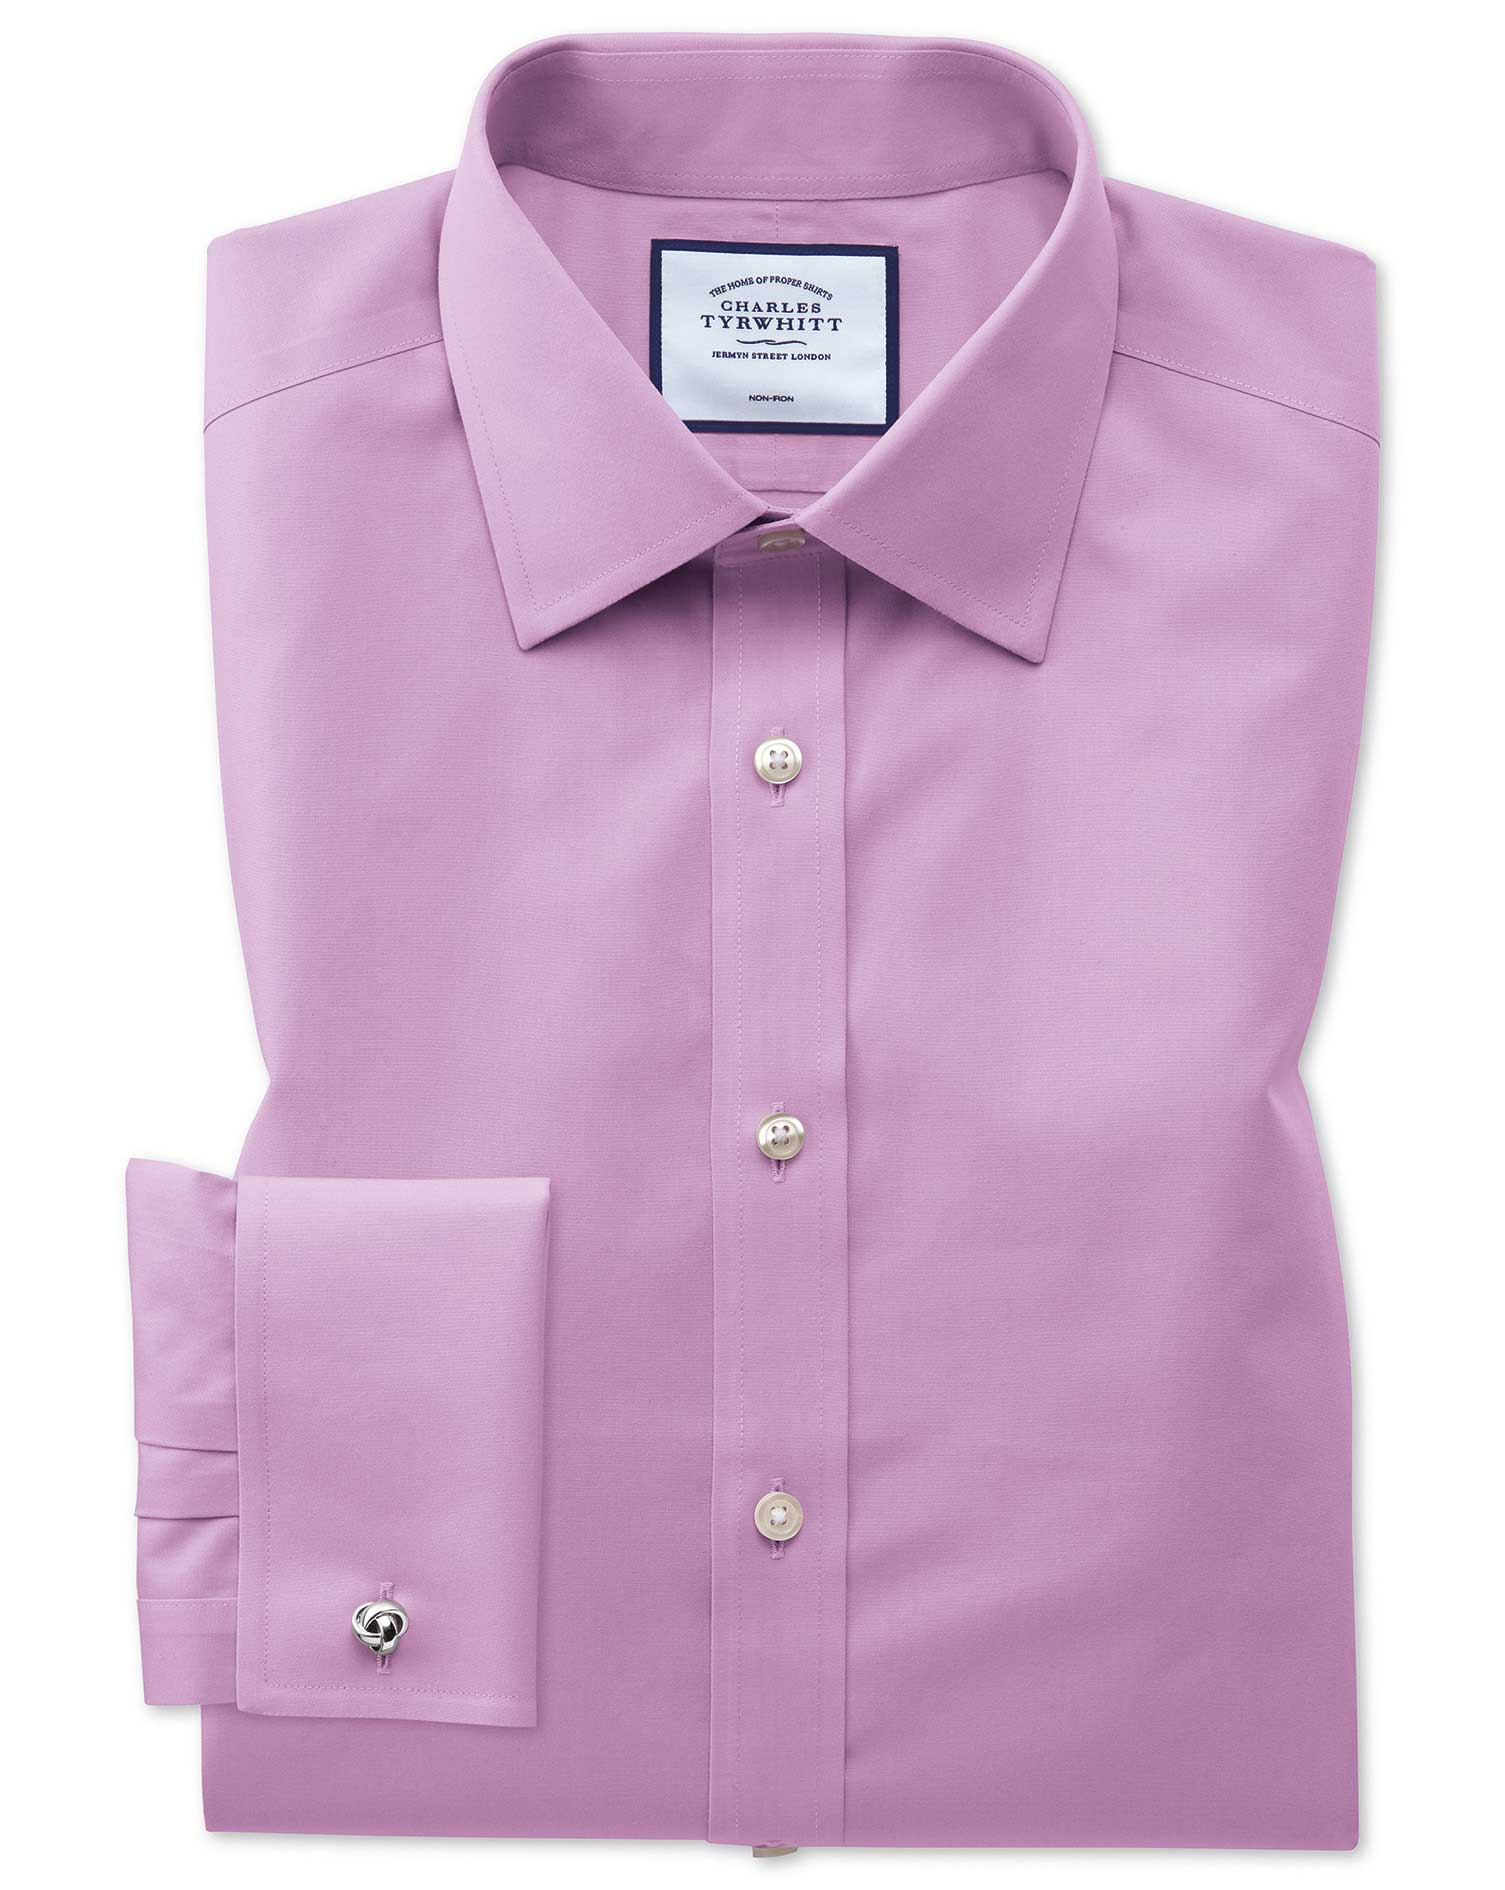 Classic Fit Non-Iron Violet Poplin Cotton Formal Shirt Single Cuff Size 18/35 by Charles Tyrwhitt